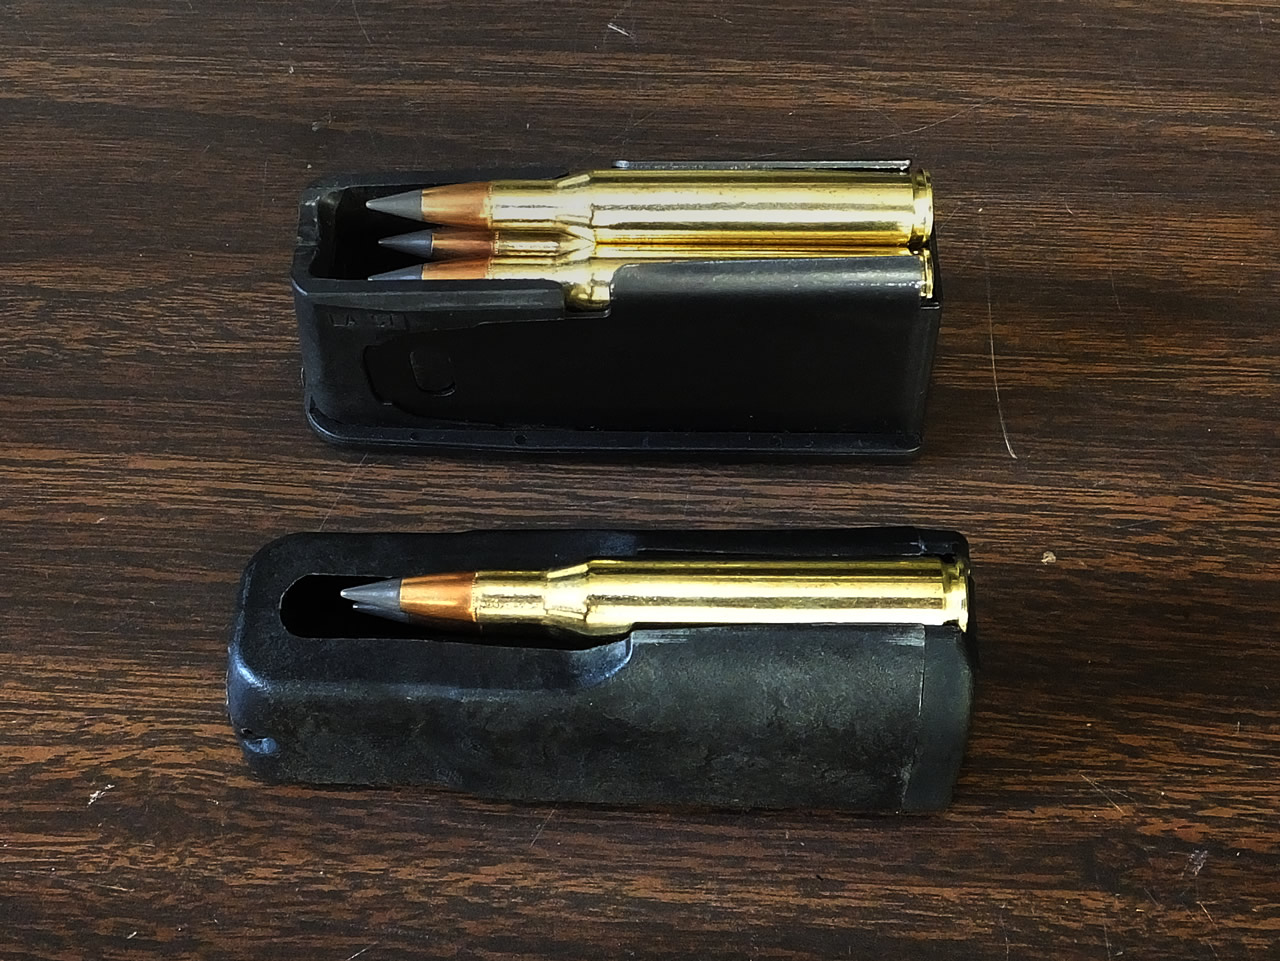 AB3 and X-Bolt loaded magazines